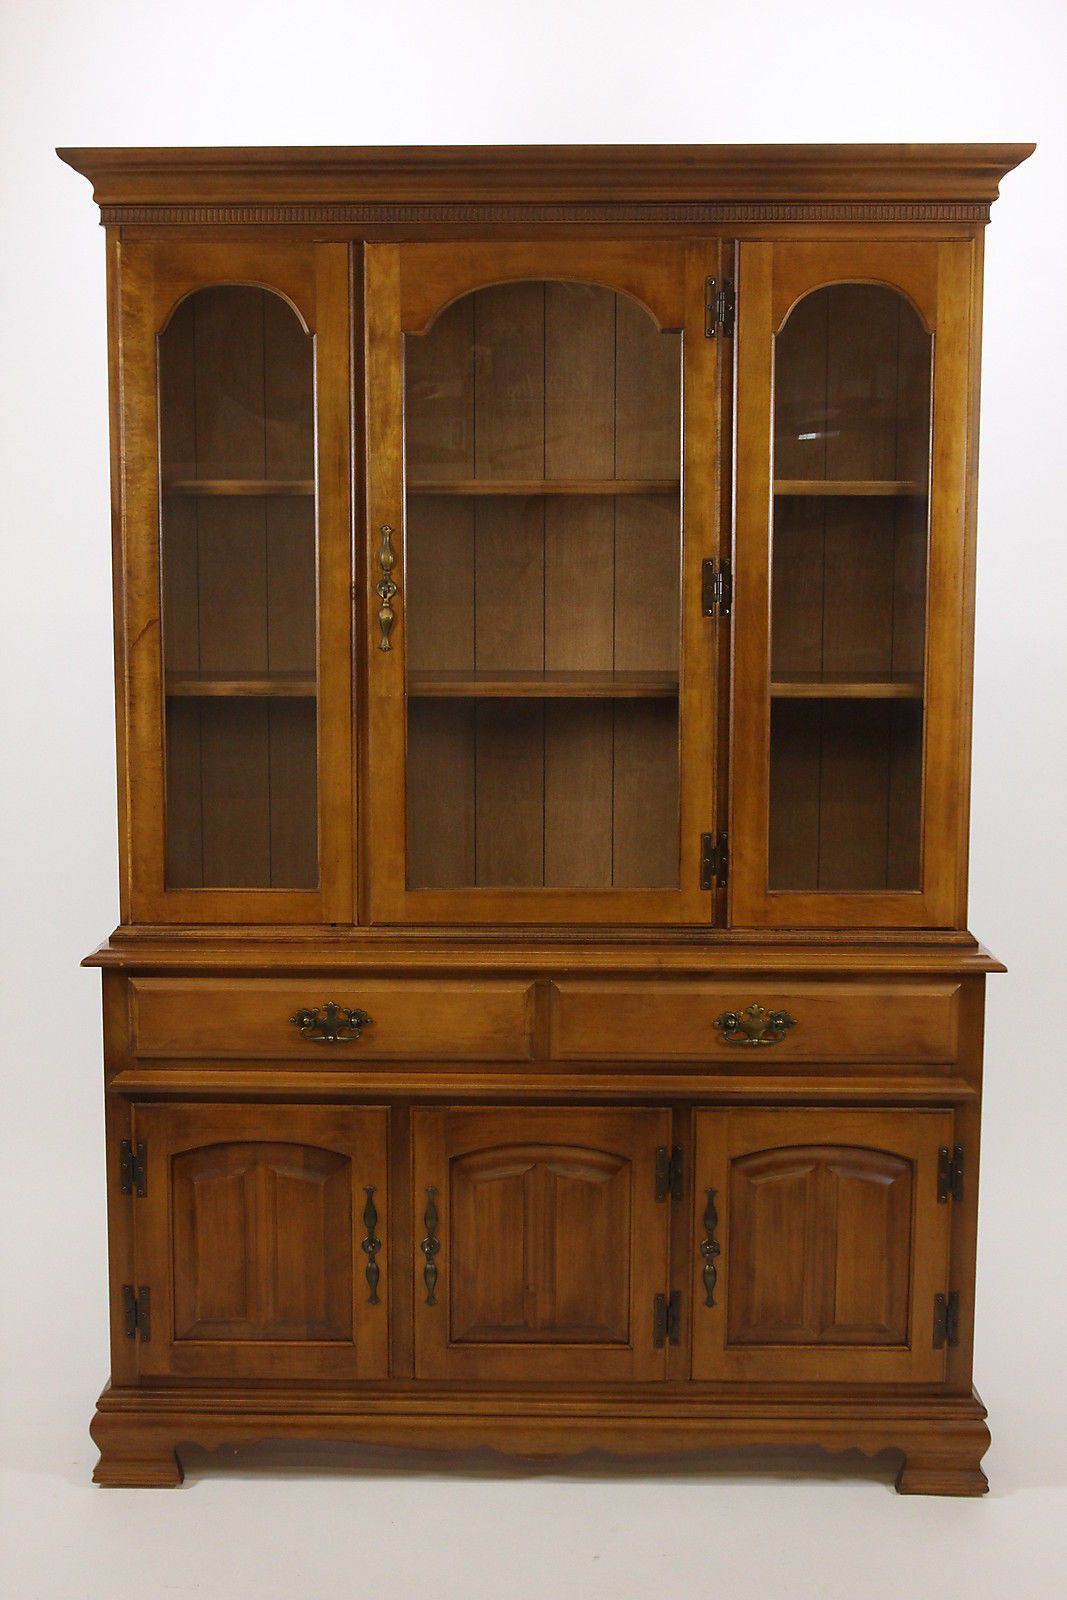 Pennsbury Manor China Cabinet Hutch Buffet By Garrison Solid Hardrock Maple - Pennsbury Manor China Cabinet Hutch Buffet By Garrison Solid